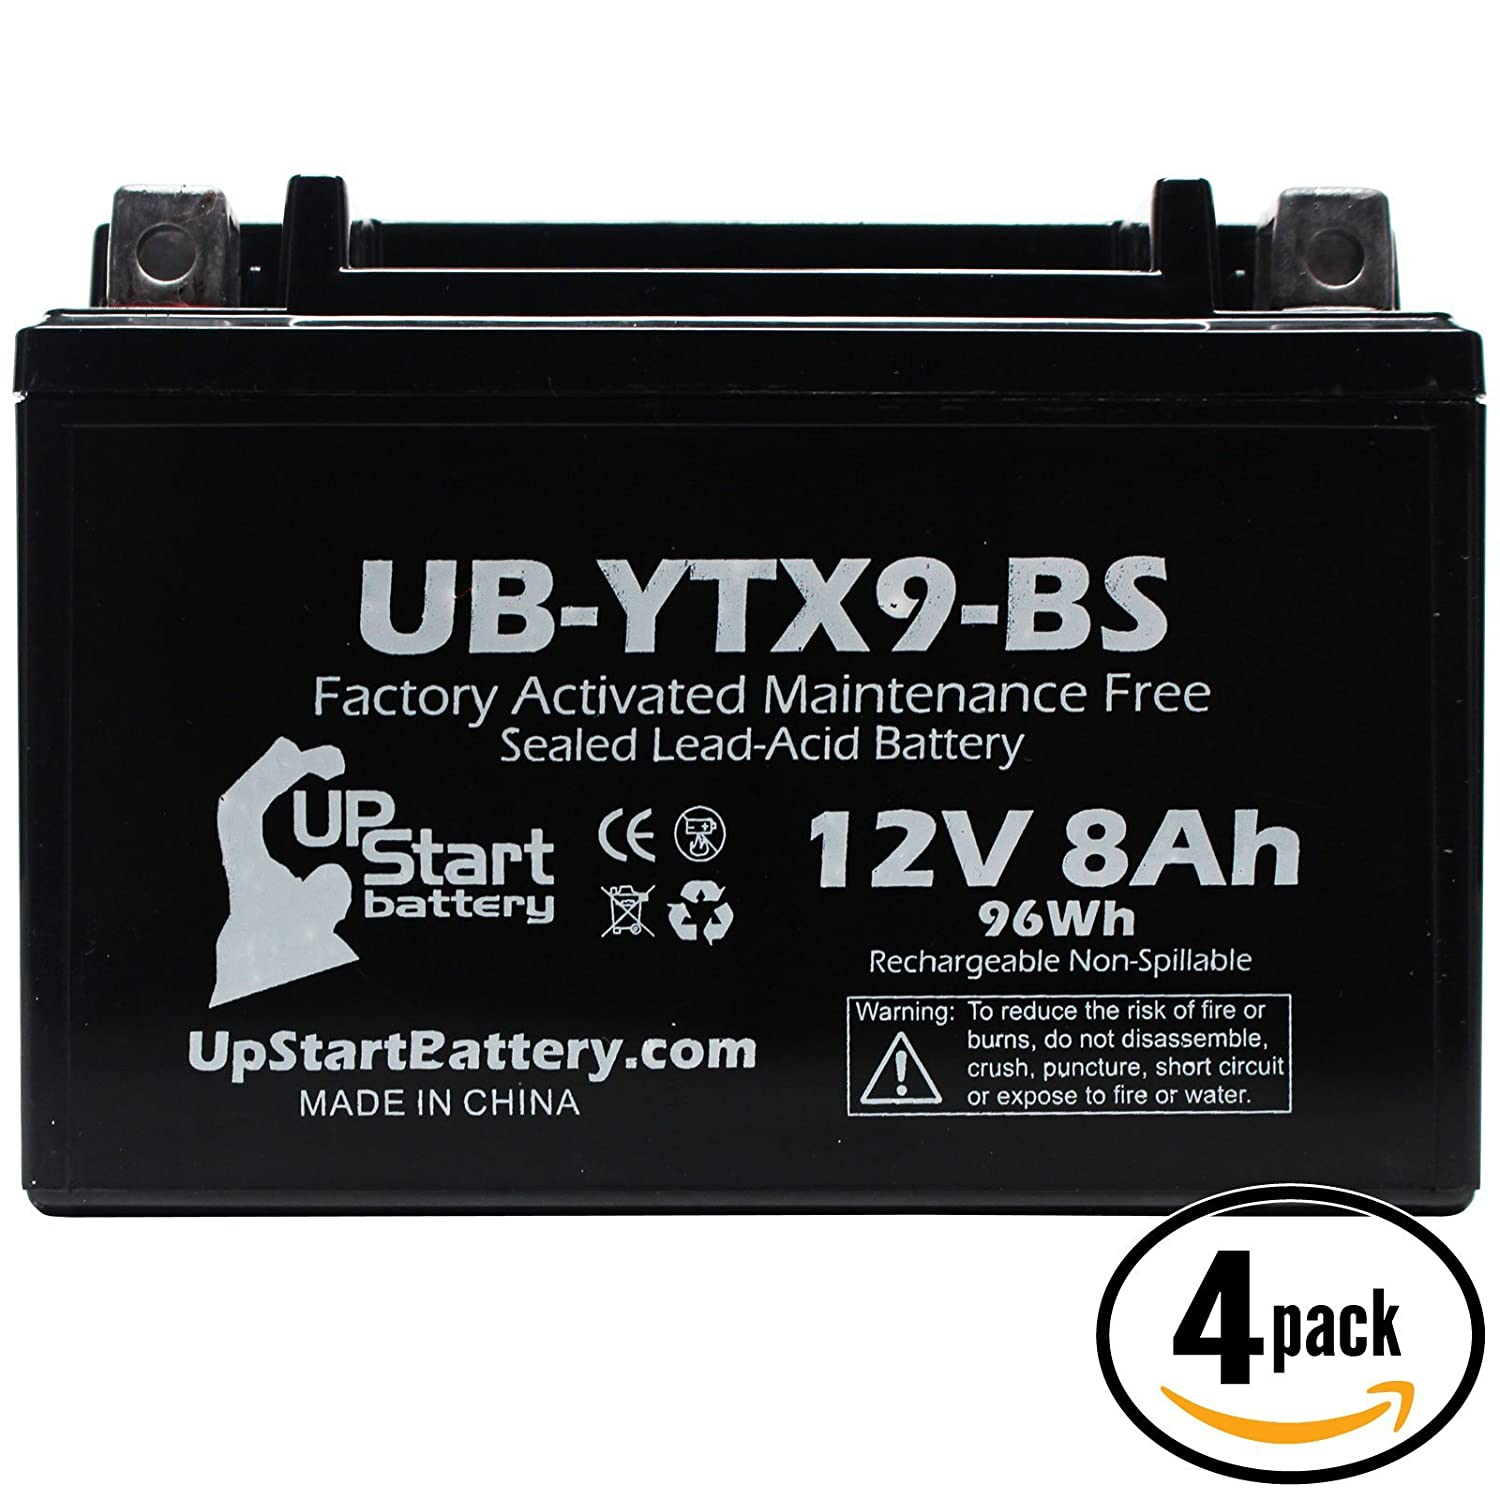 4-Pack Replacement 2001 E-Ton YXL150 Yukon 150CC Factory Activated, Maintenance Free, ATV Battery - 12V, 8Ah, UB-YTX9-BS